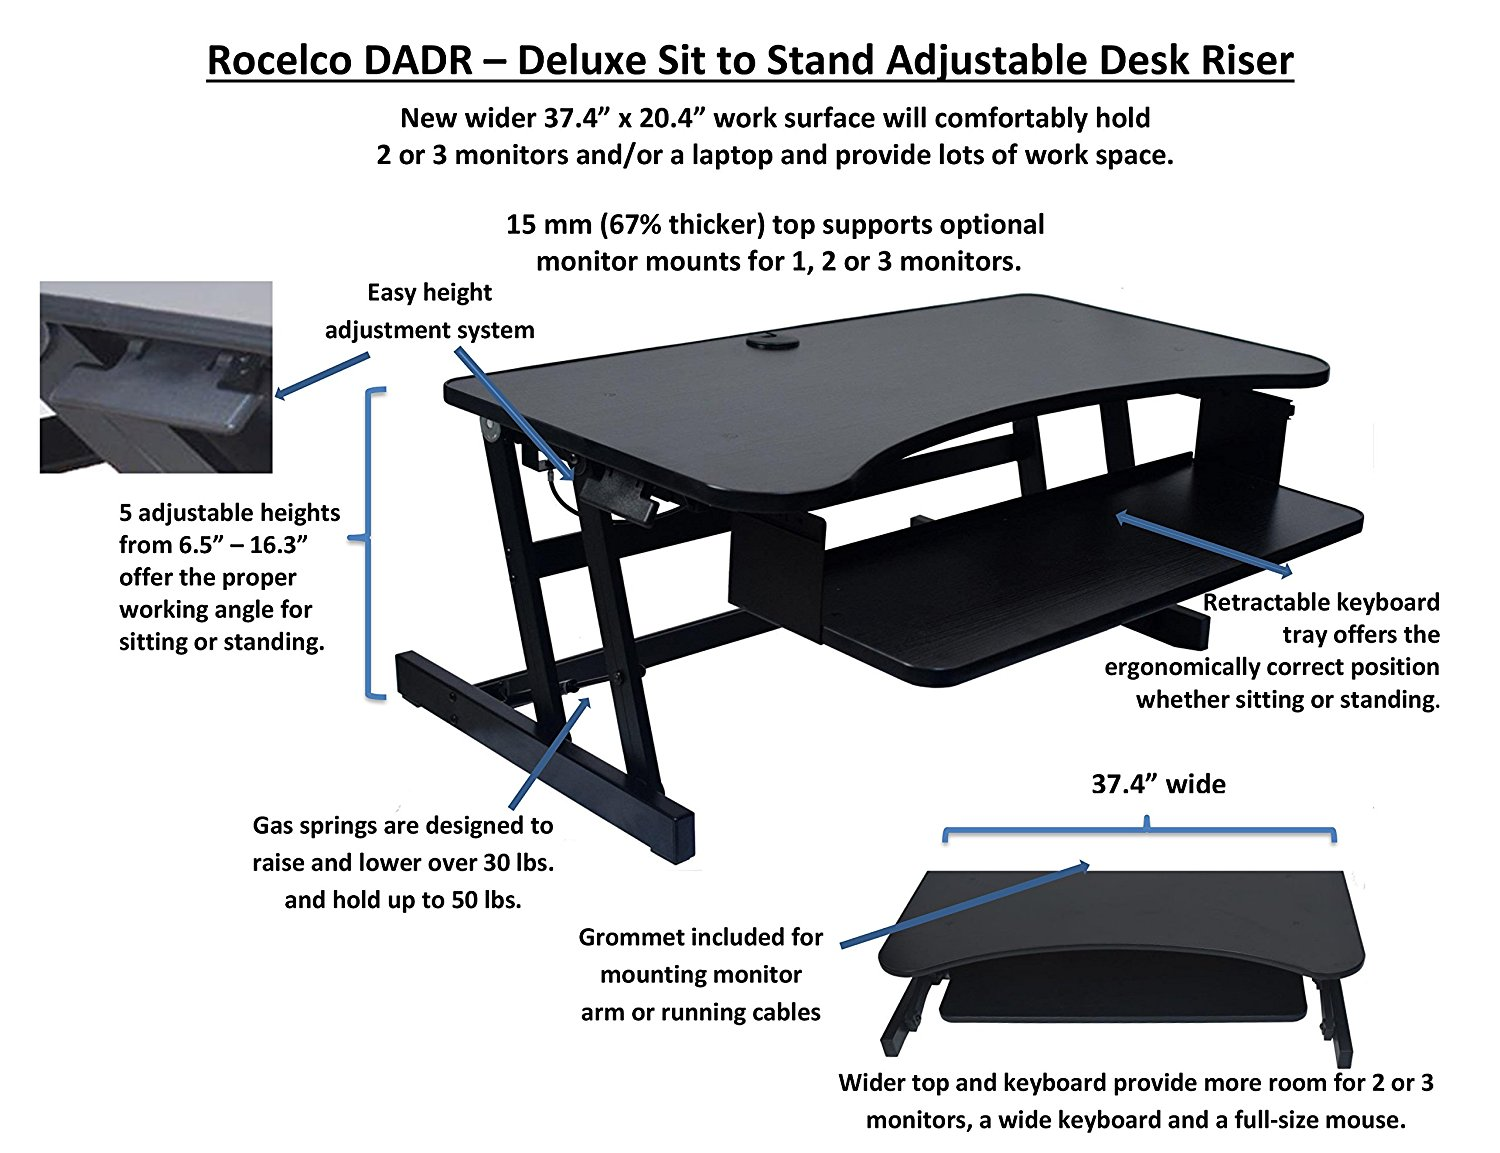 Rocelco Dadr Deluxe Adjustable Height Sit To Stand Desk Riser